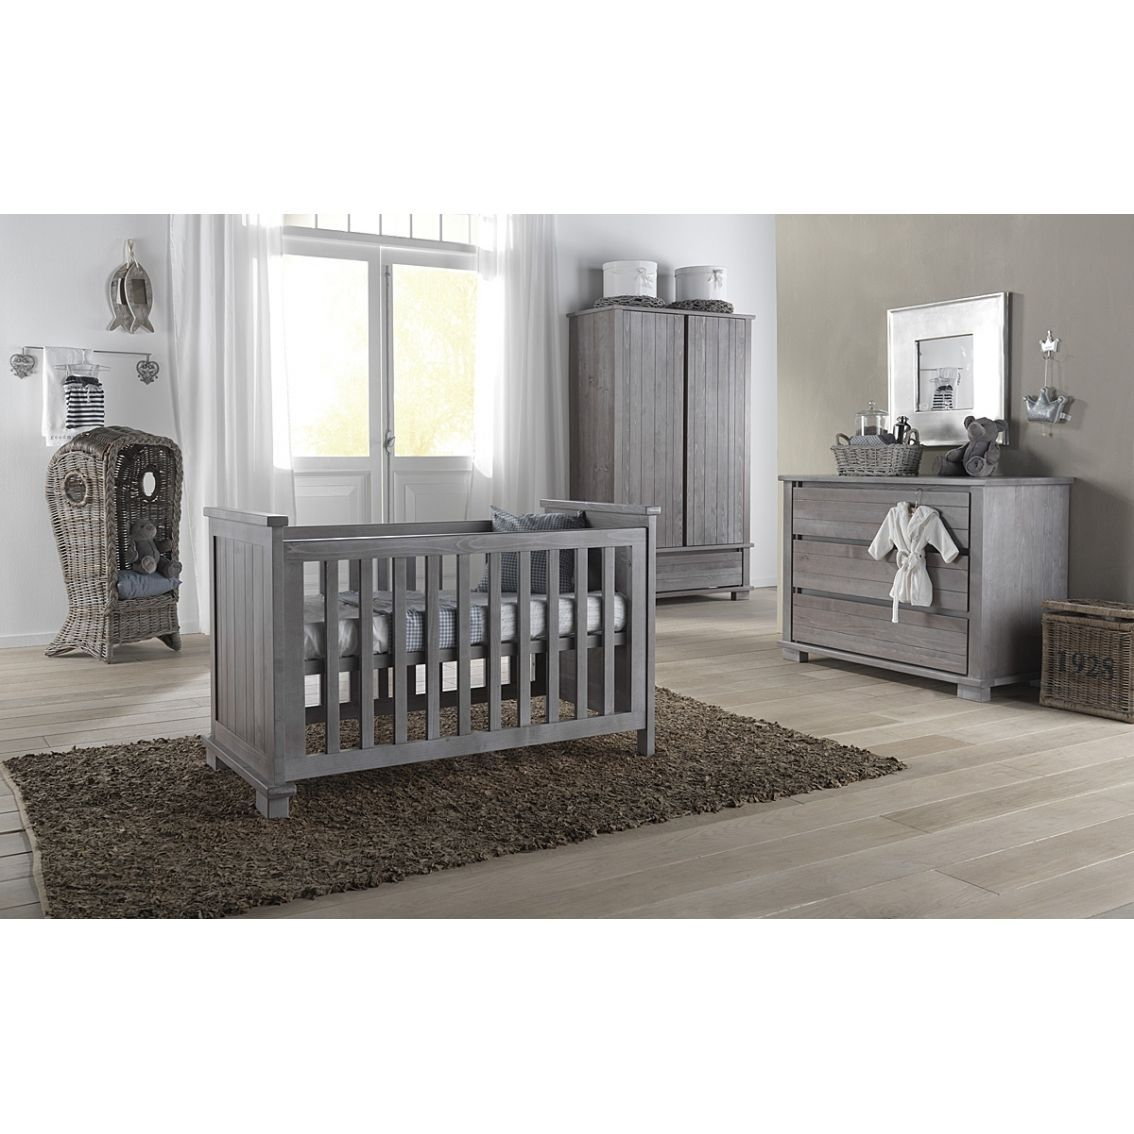 Kidsmill Malmo Smoked Grey Nursery Furniture Set Could Work With This